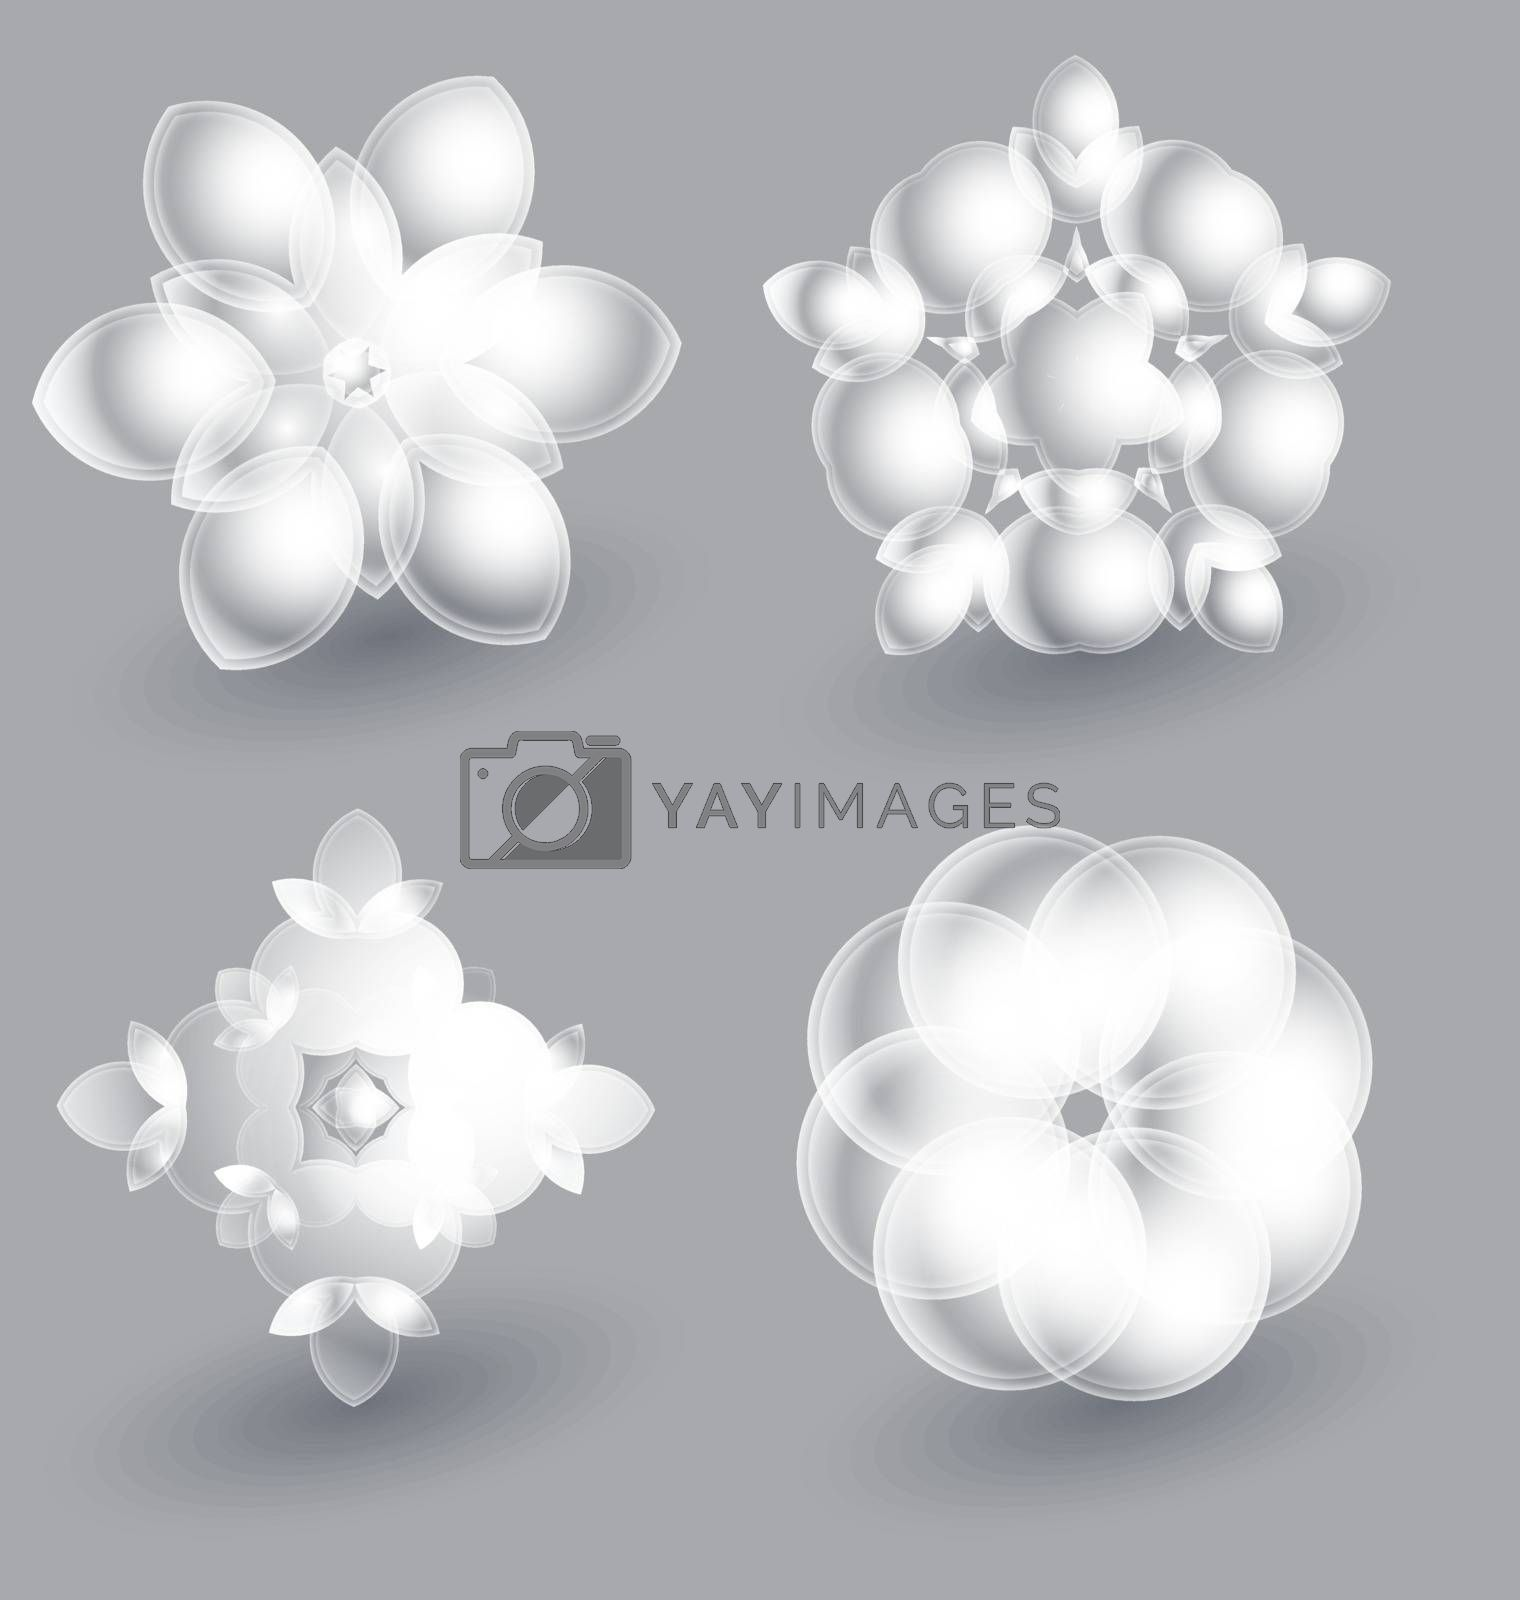 Beautiful ice flowers collection for creative design